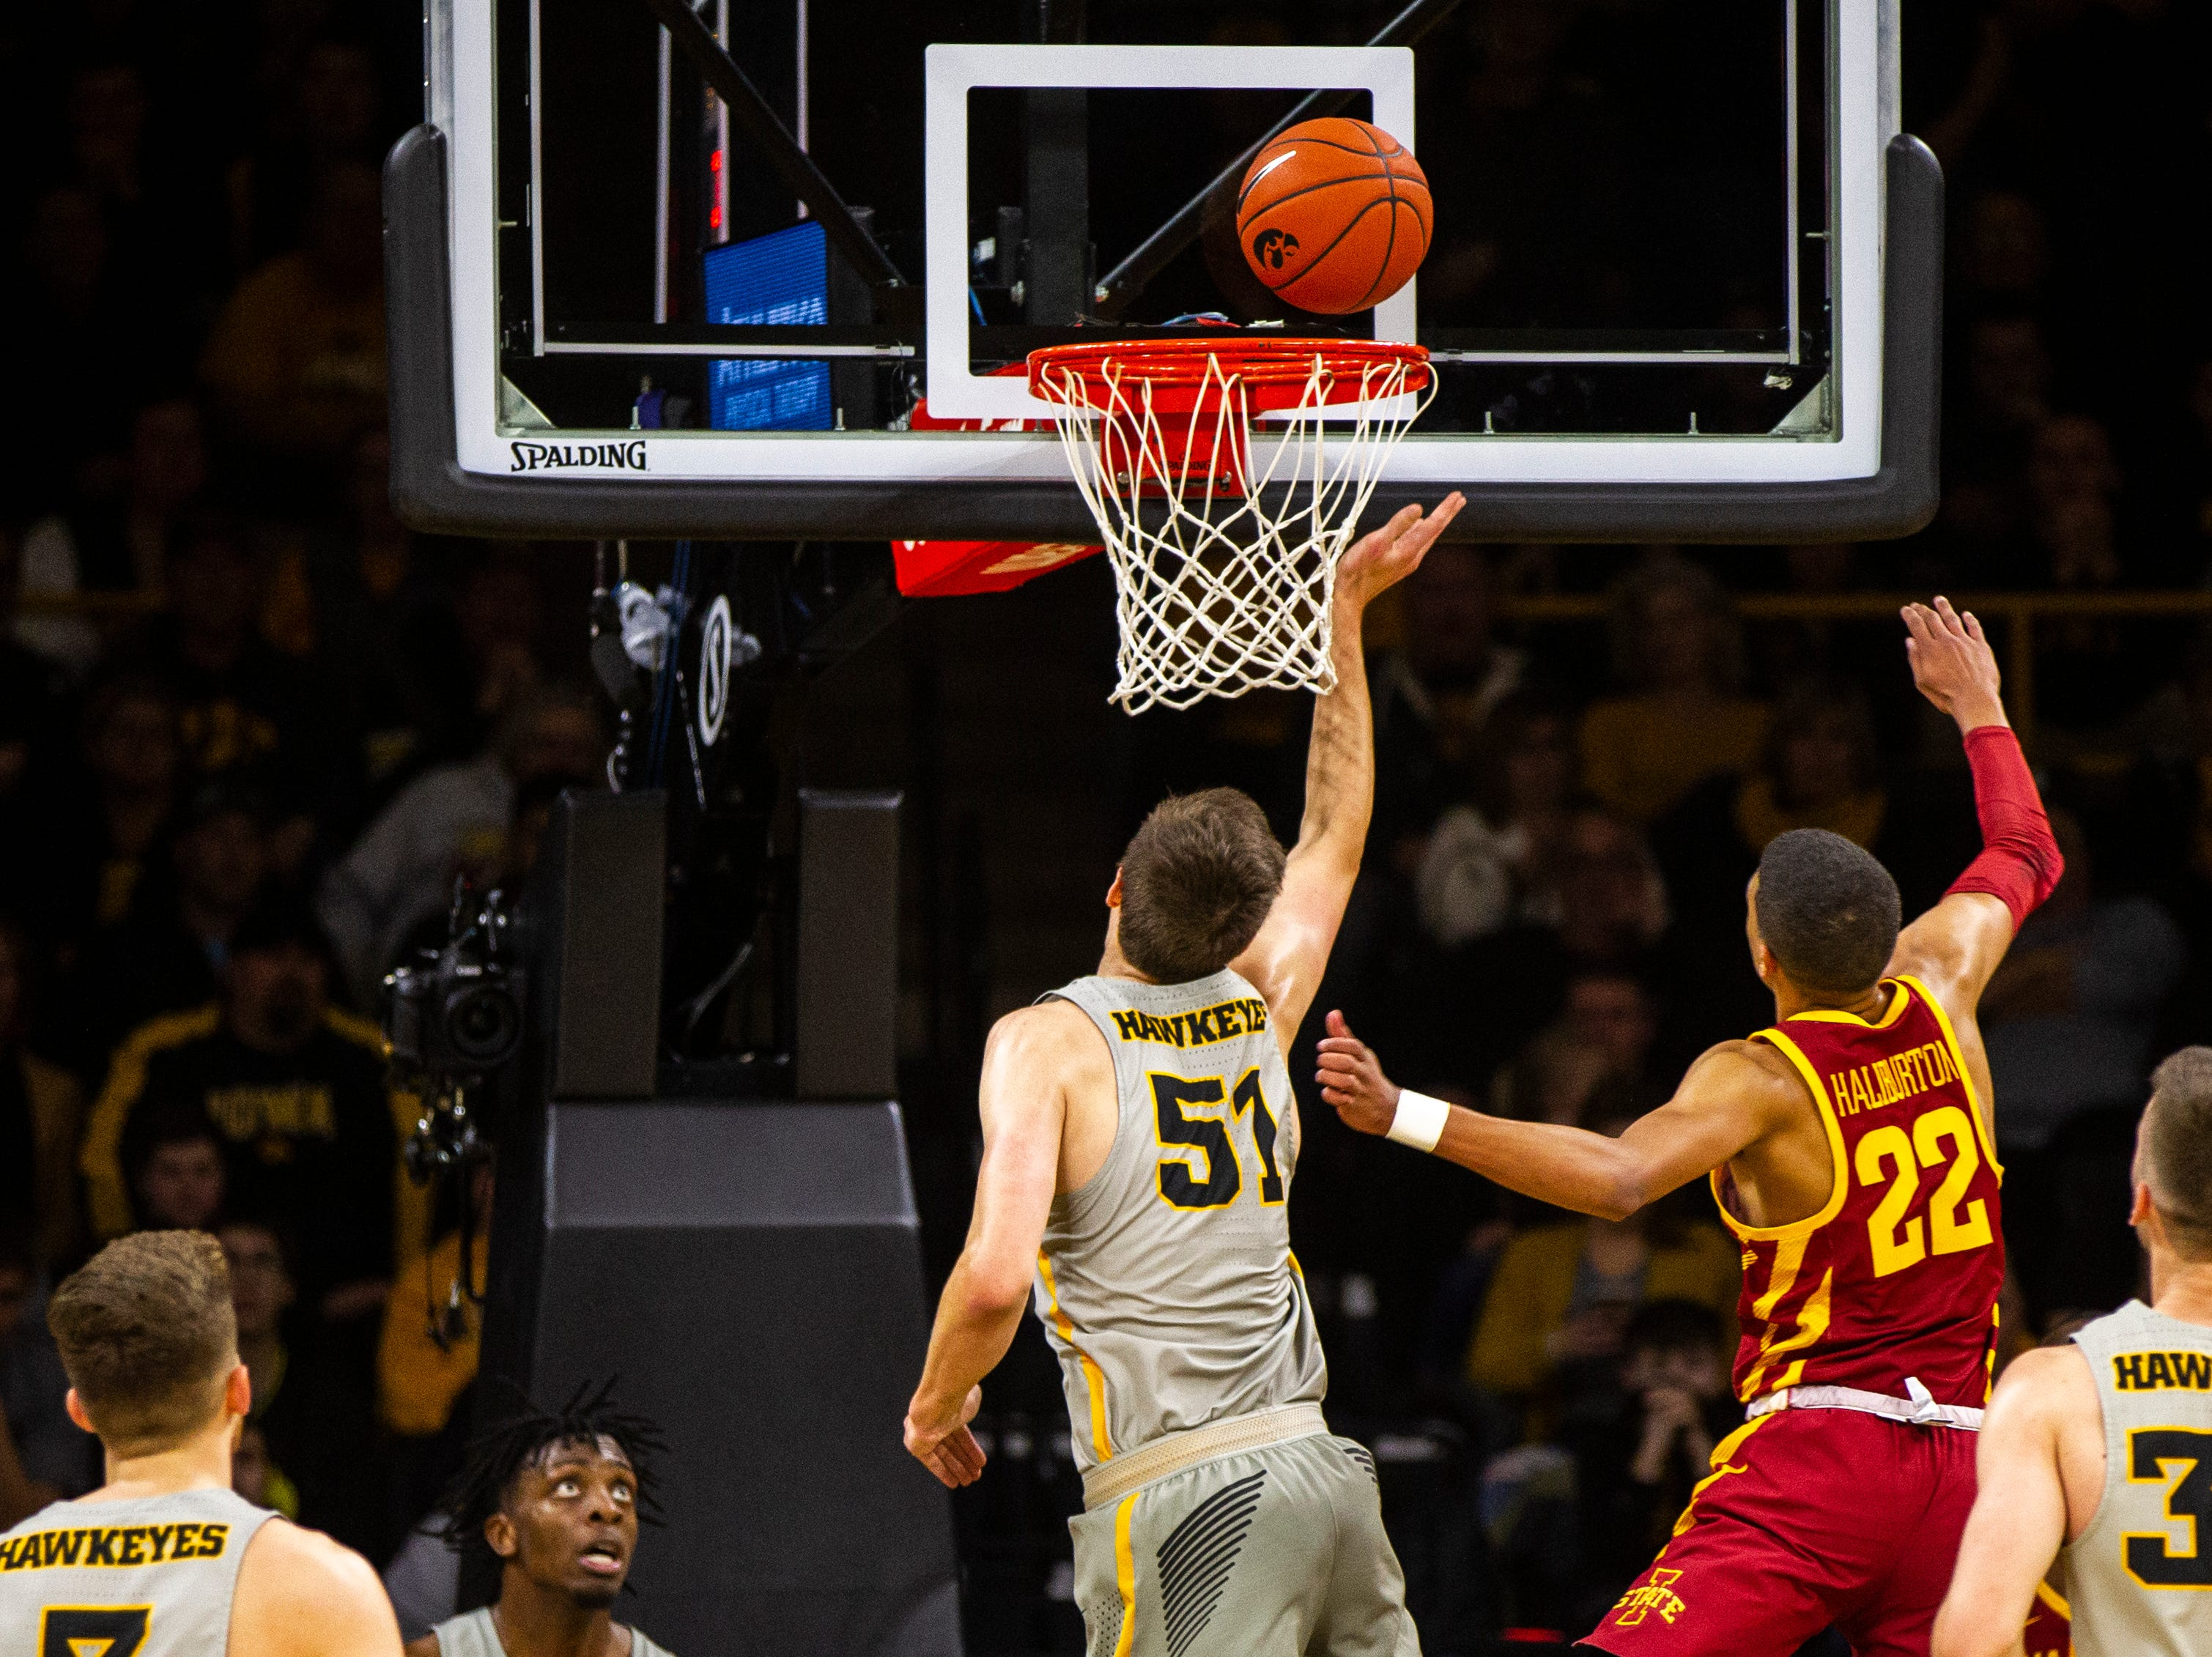 Iowa forward Nicholas Baer (51) tips a ball in during a NCAA Cy-Hawk series men's basketball game on Thursday, Dec. 6, 2018, at Carver-Hawkeye Arena in Iowa City.